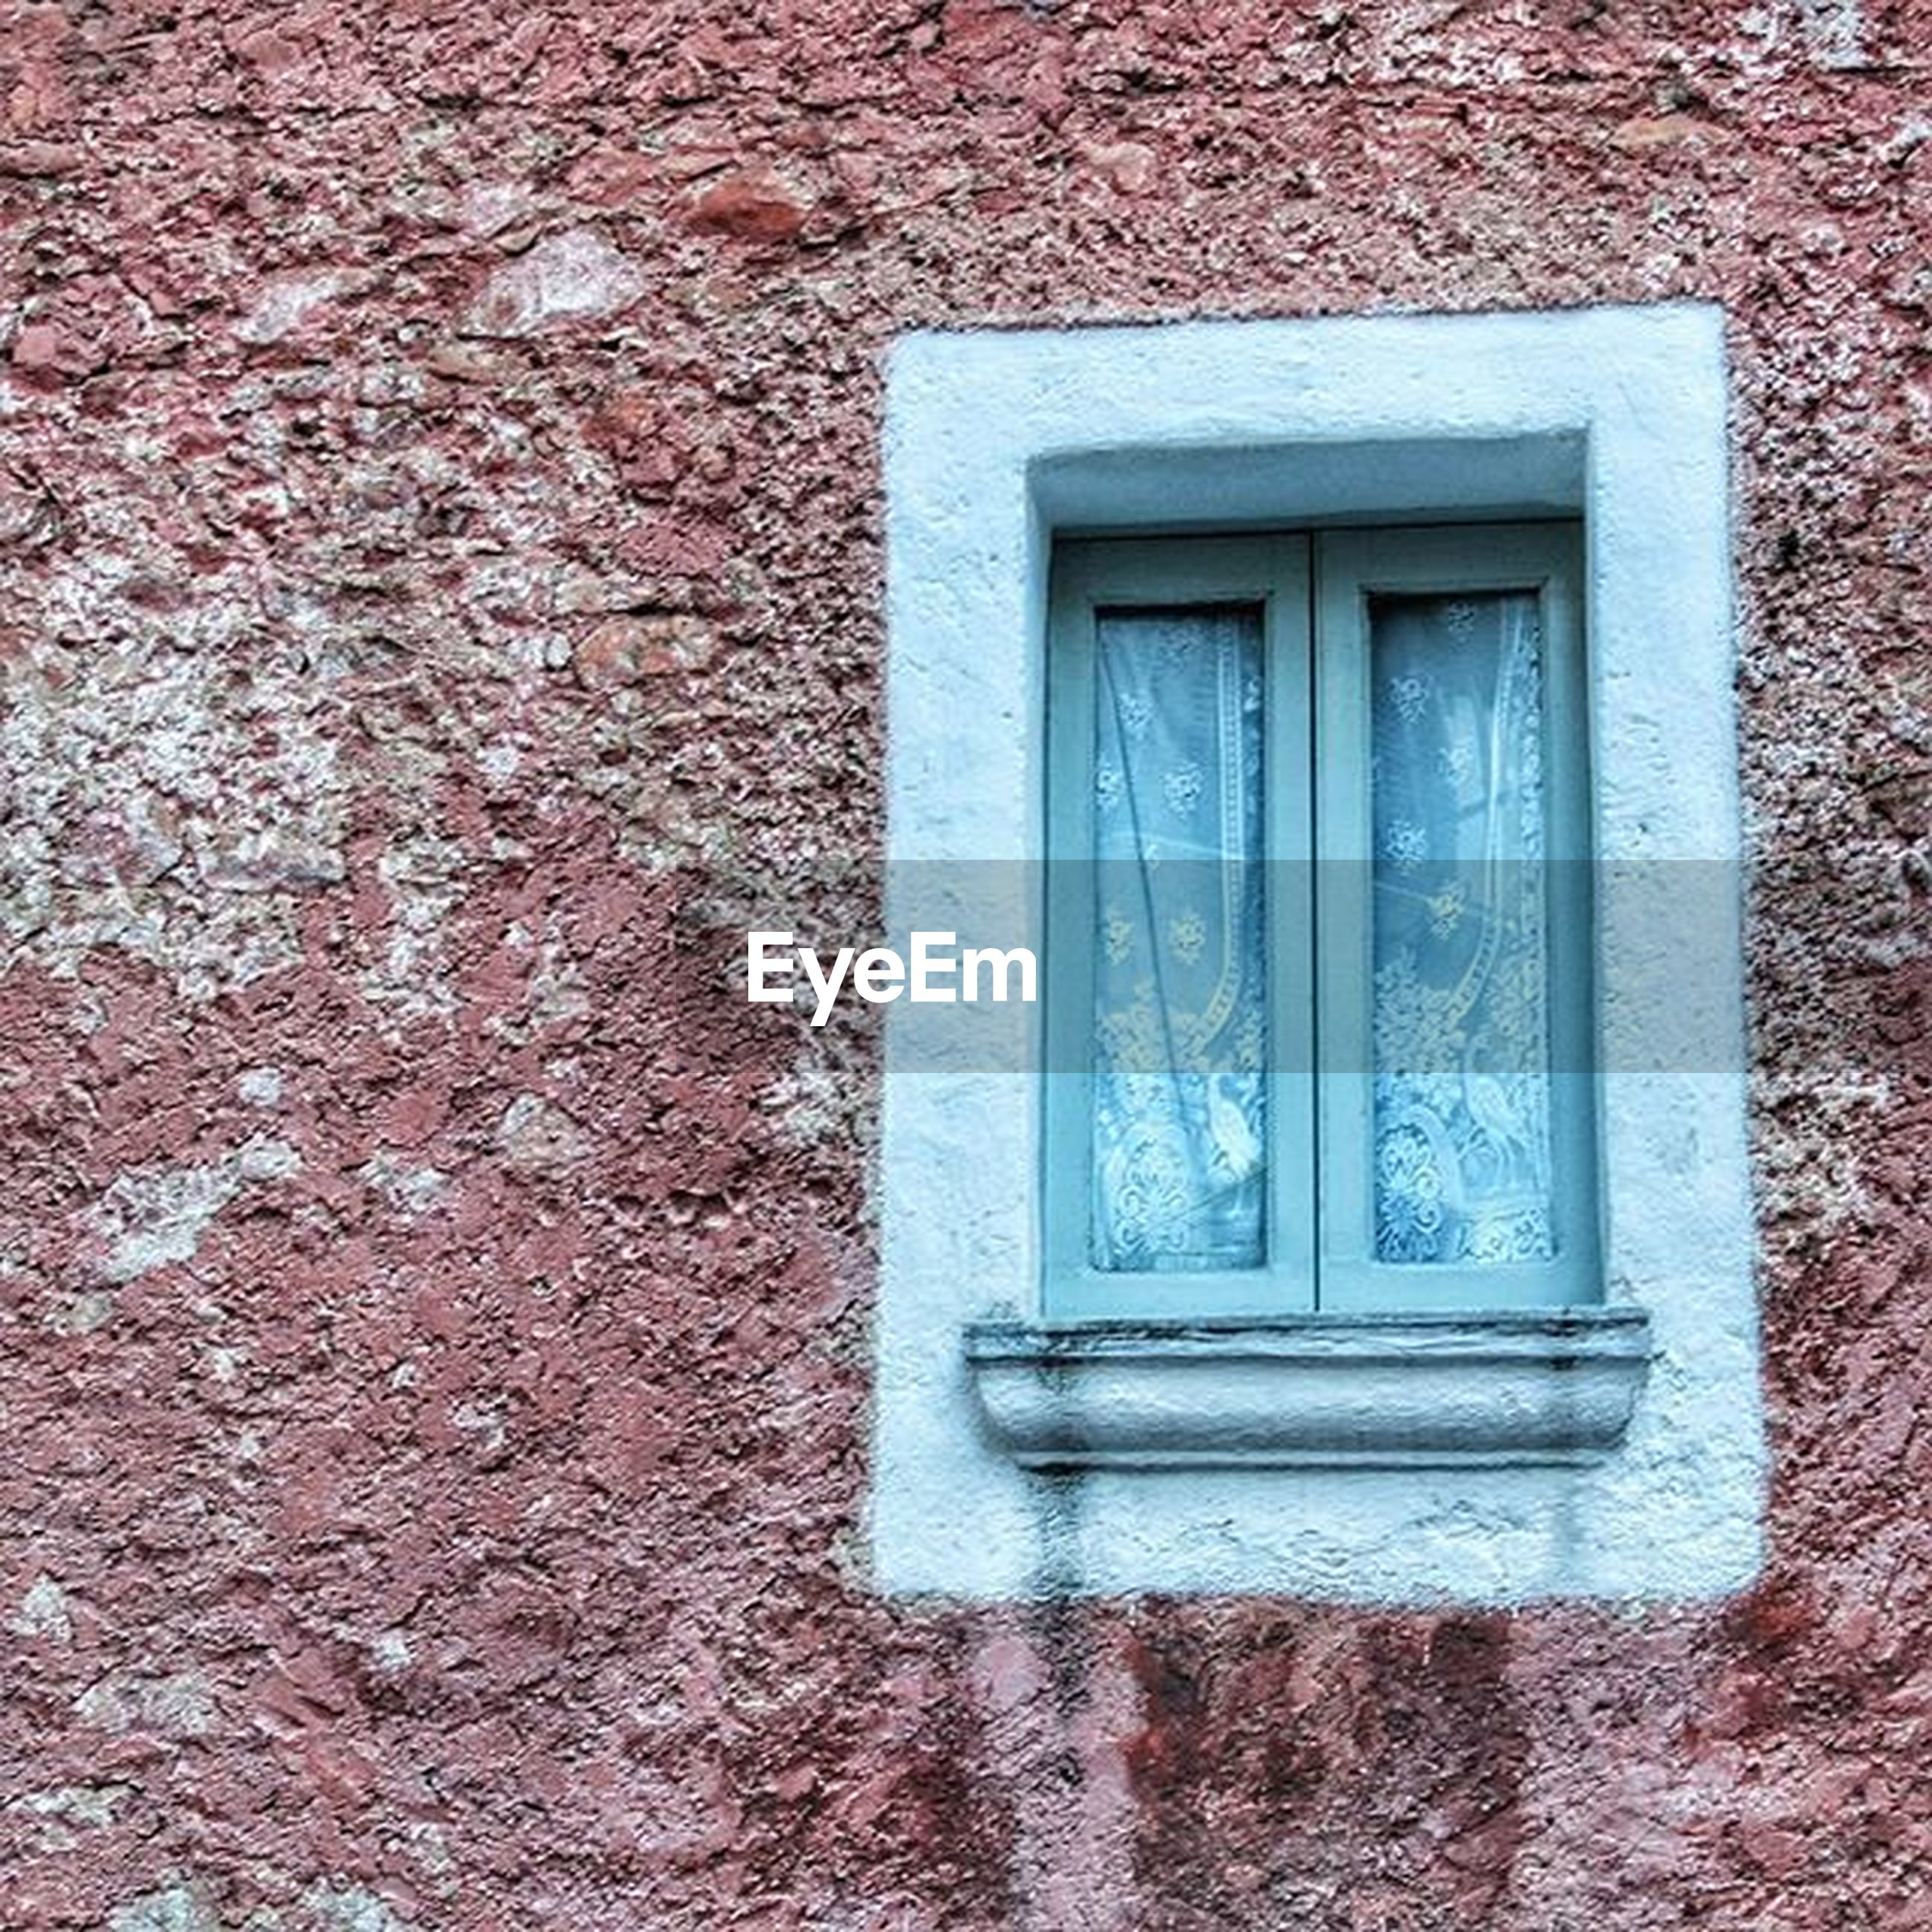 window, building exterior, architecture, built structure, door, closed, house, wall - building feature, wall, day, outdoors, safety, old, weathered, no people, brick wall, protection, close-up, residential structure, entrance